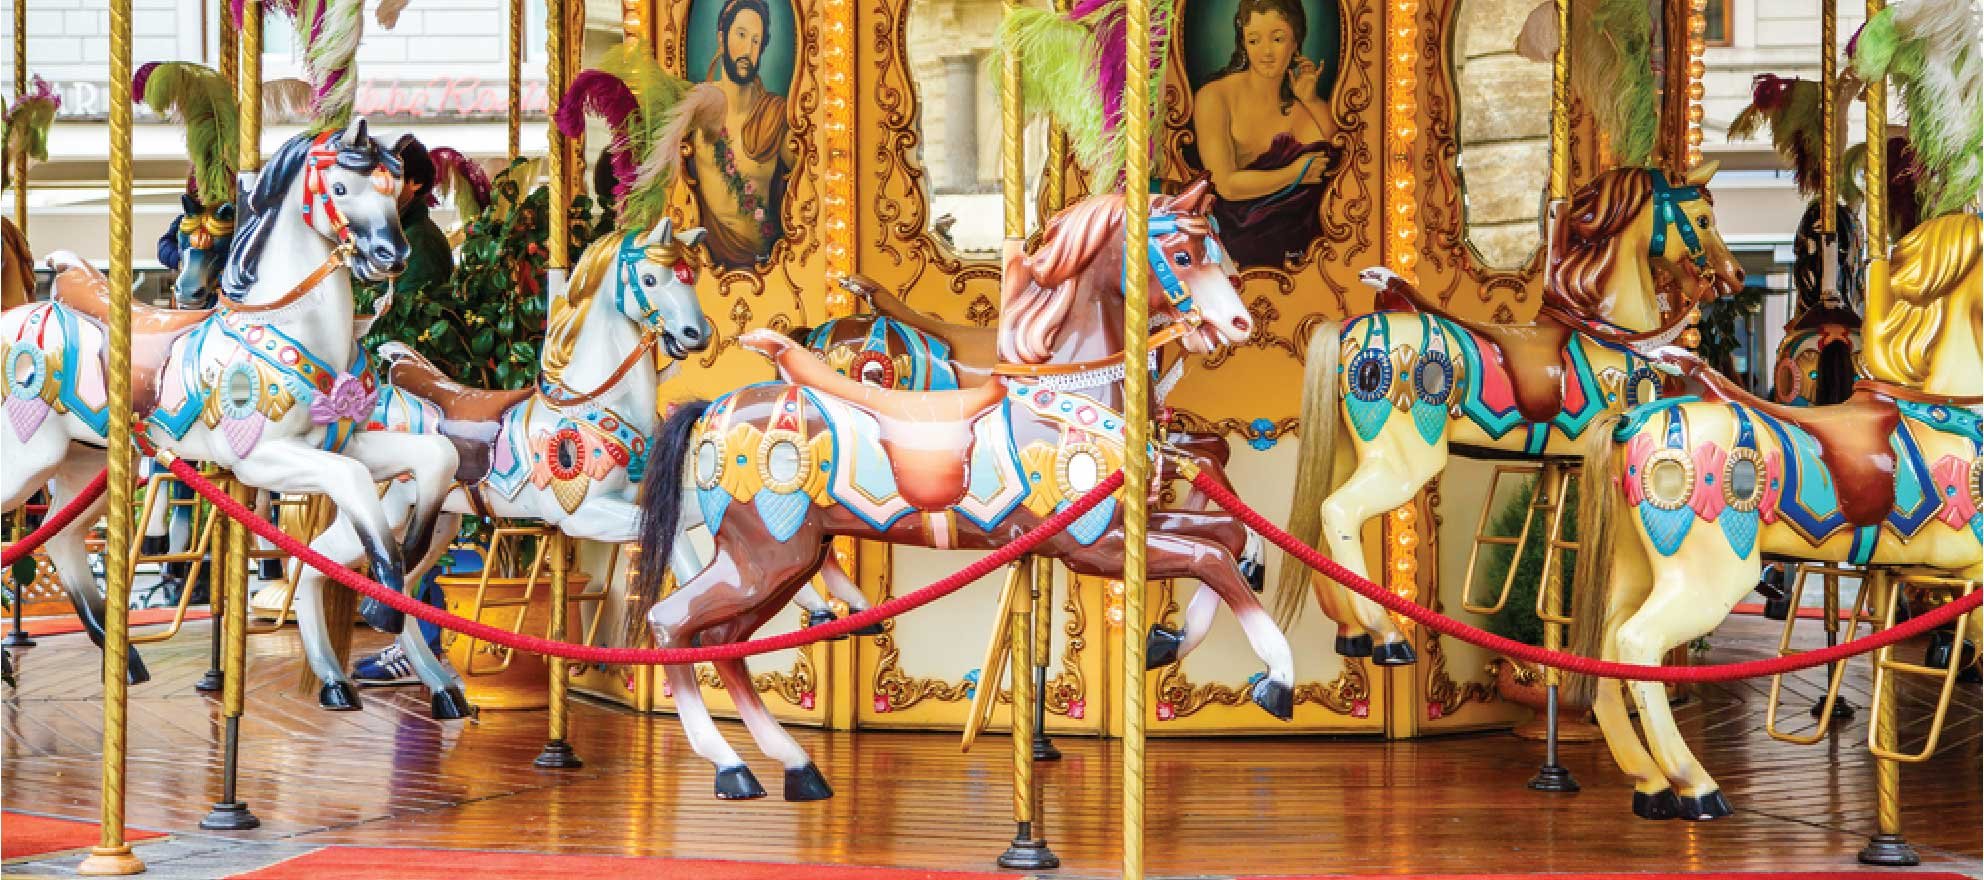 Riding the loan modification merry-go-round